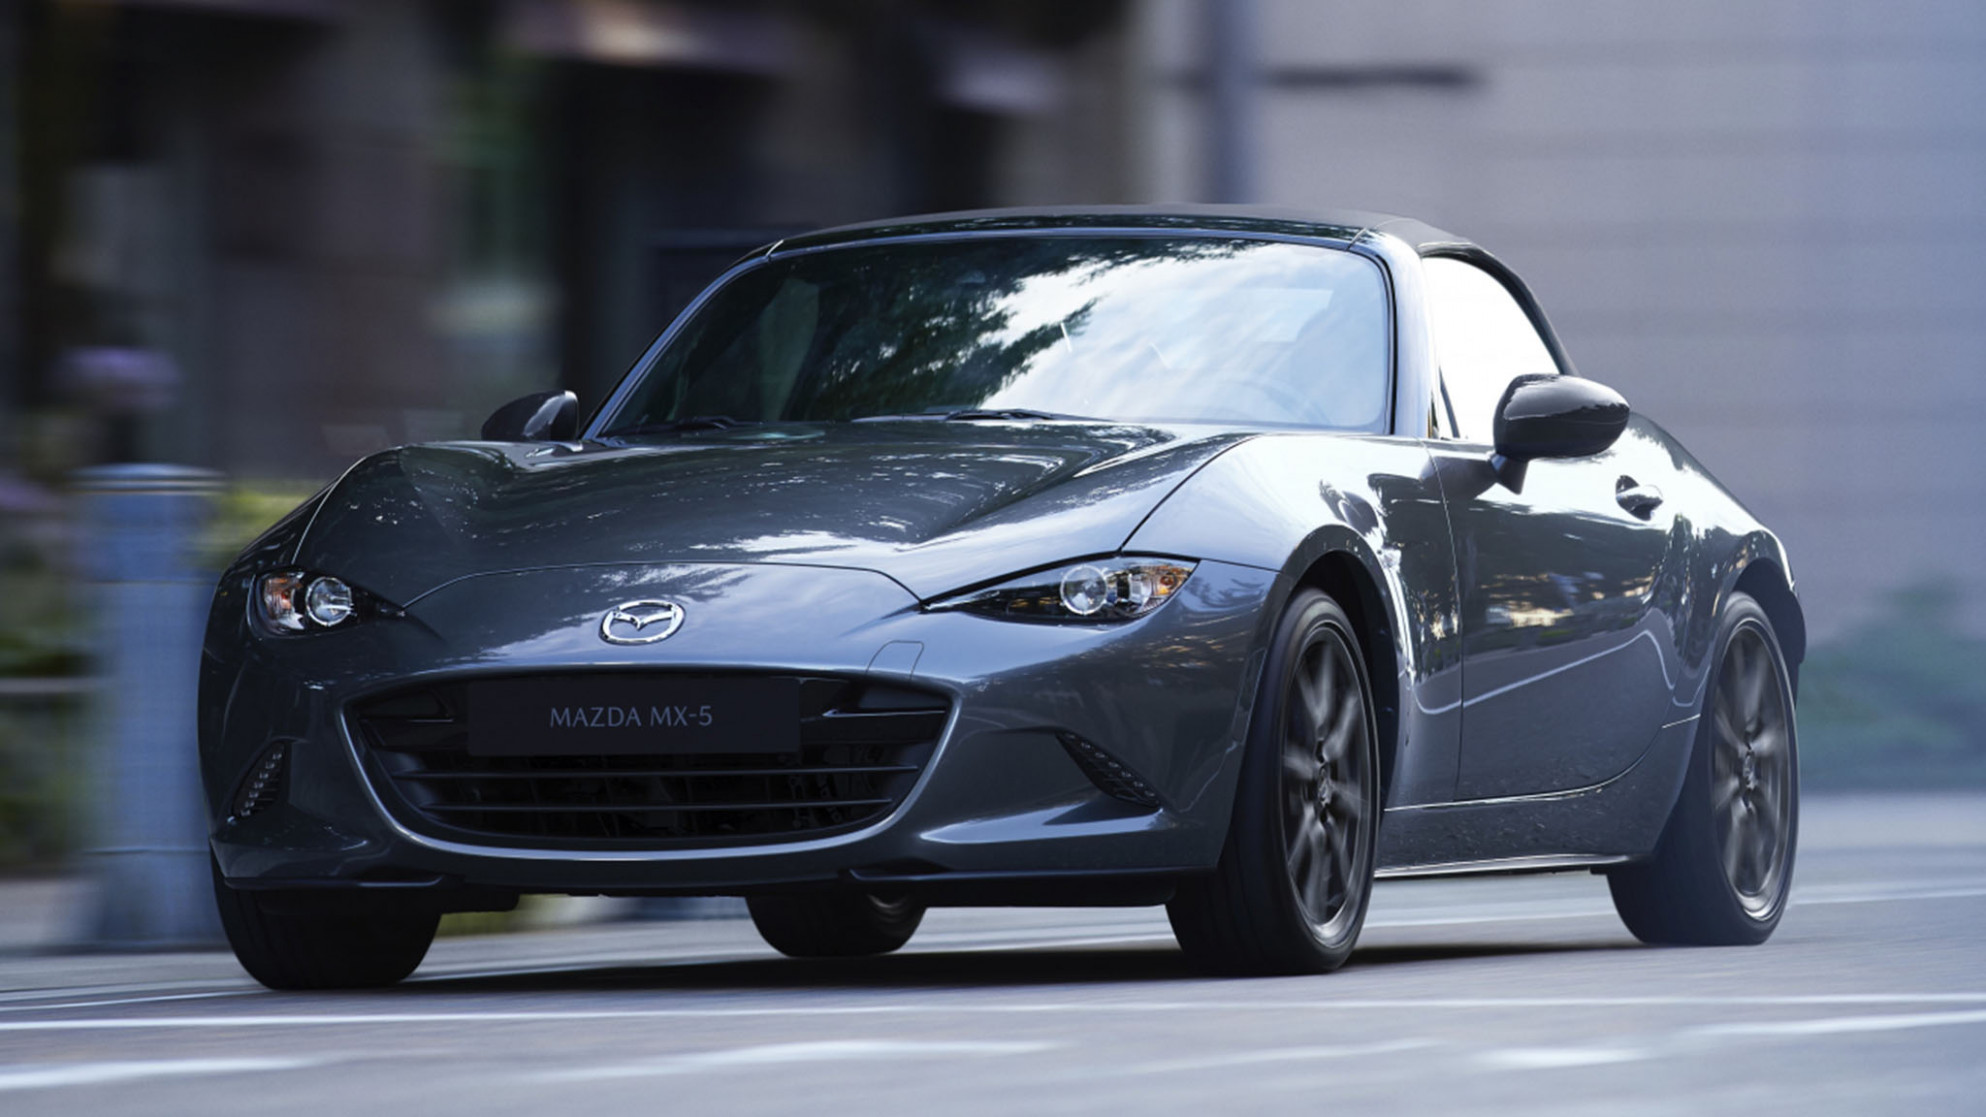 6 Mazda Miata First Look: More Stuff Packed Into the Same ...